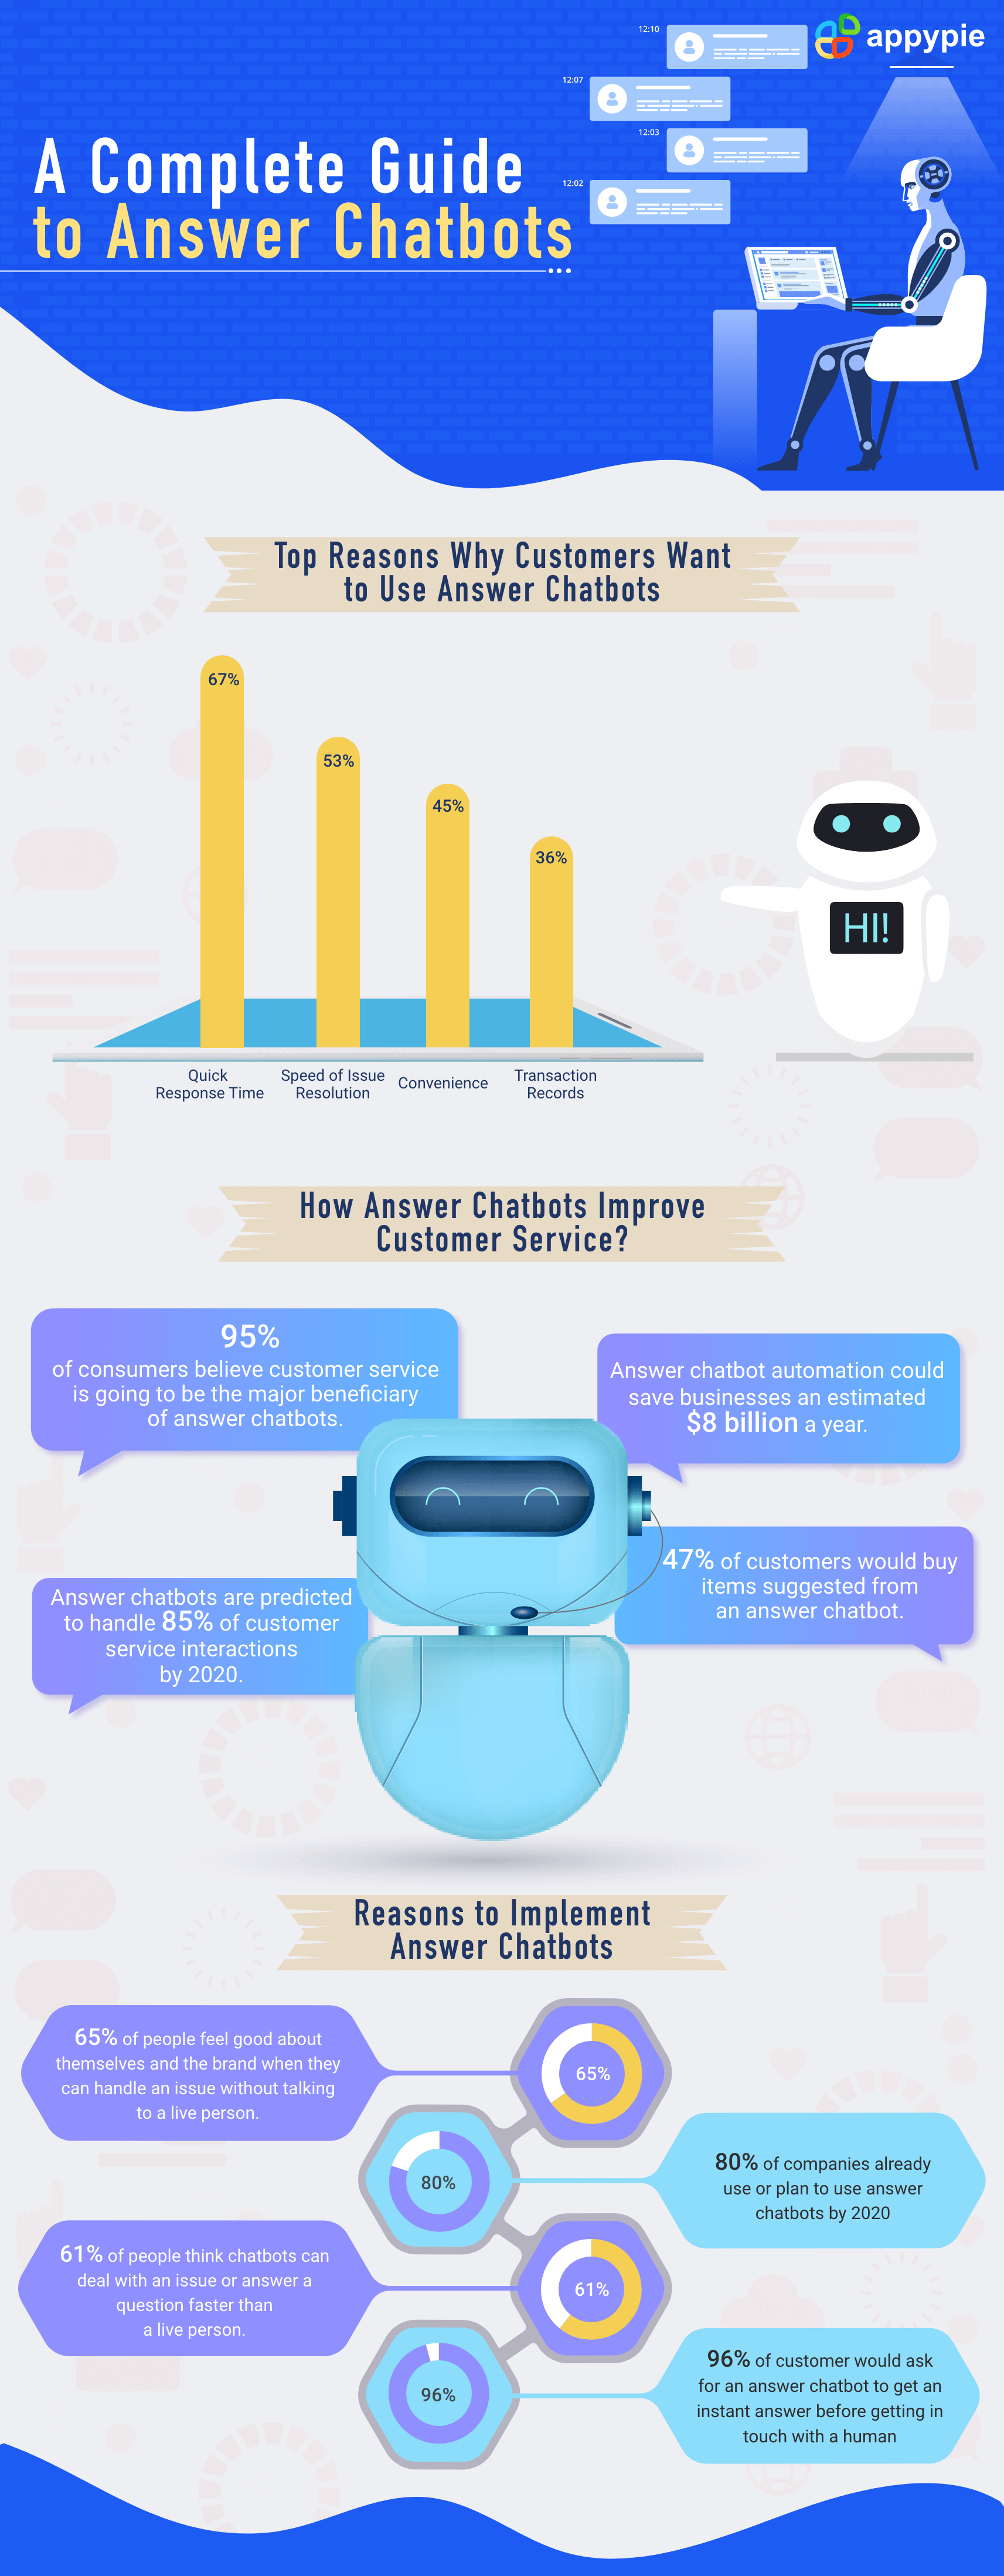 How a Chatbot Can Assist Customer Service - Appy Pie